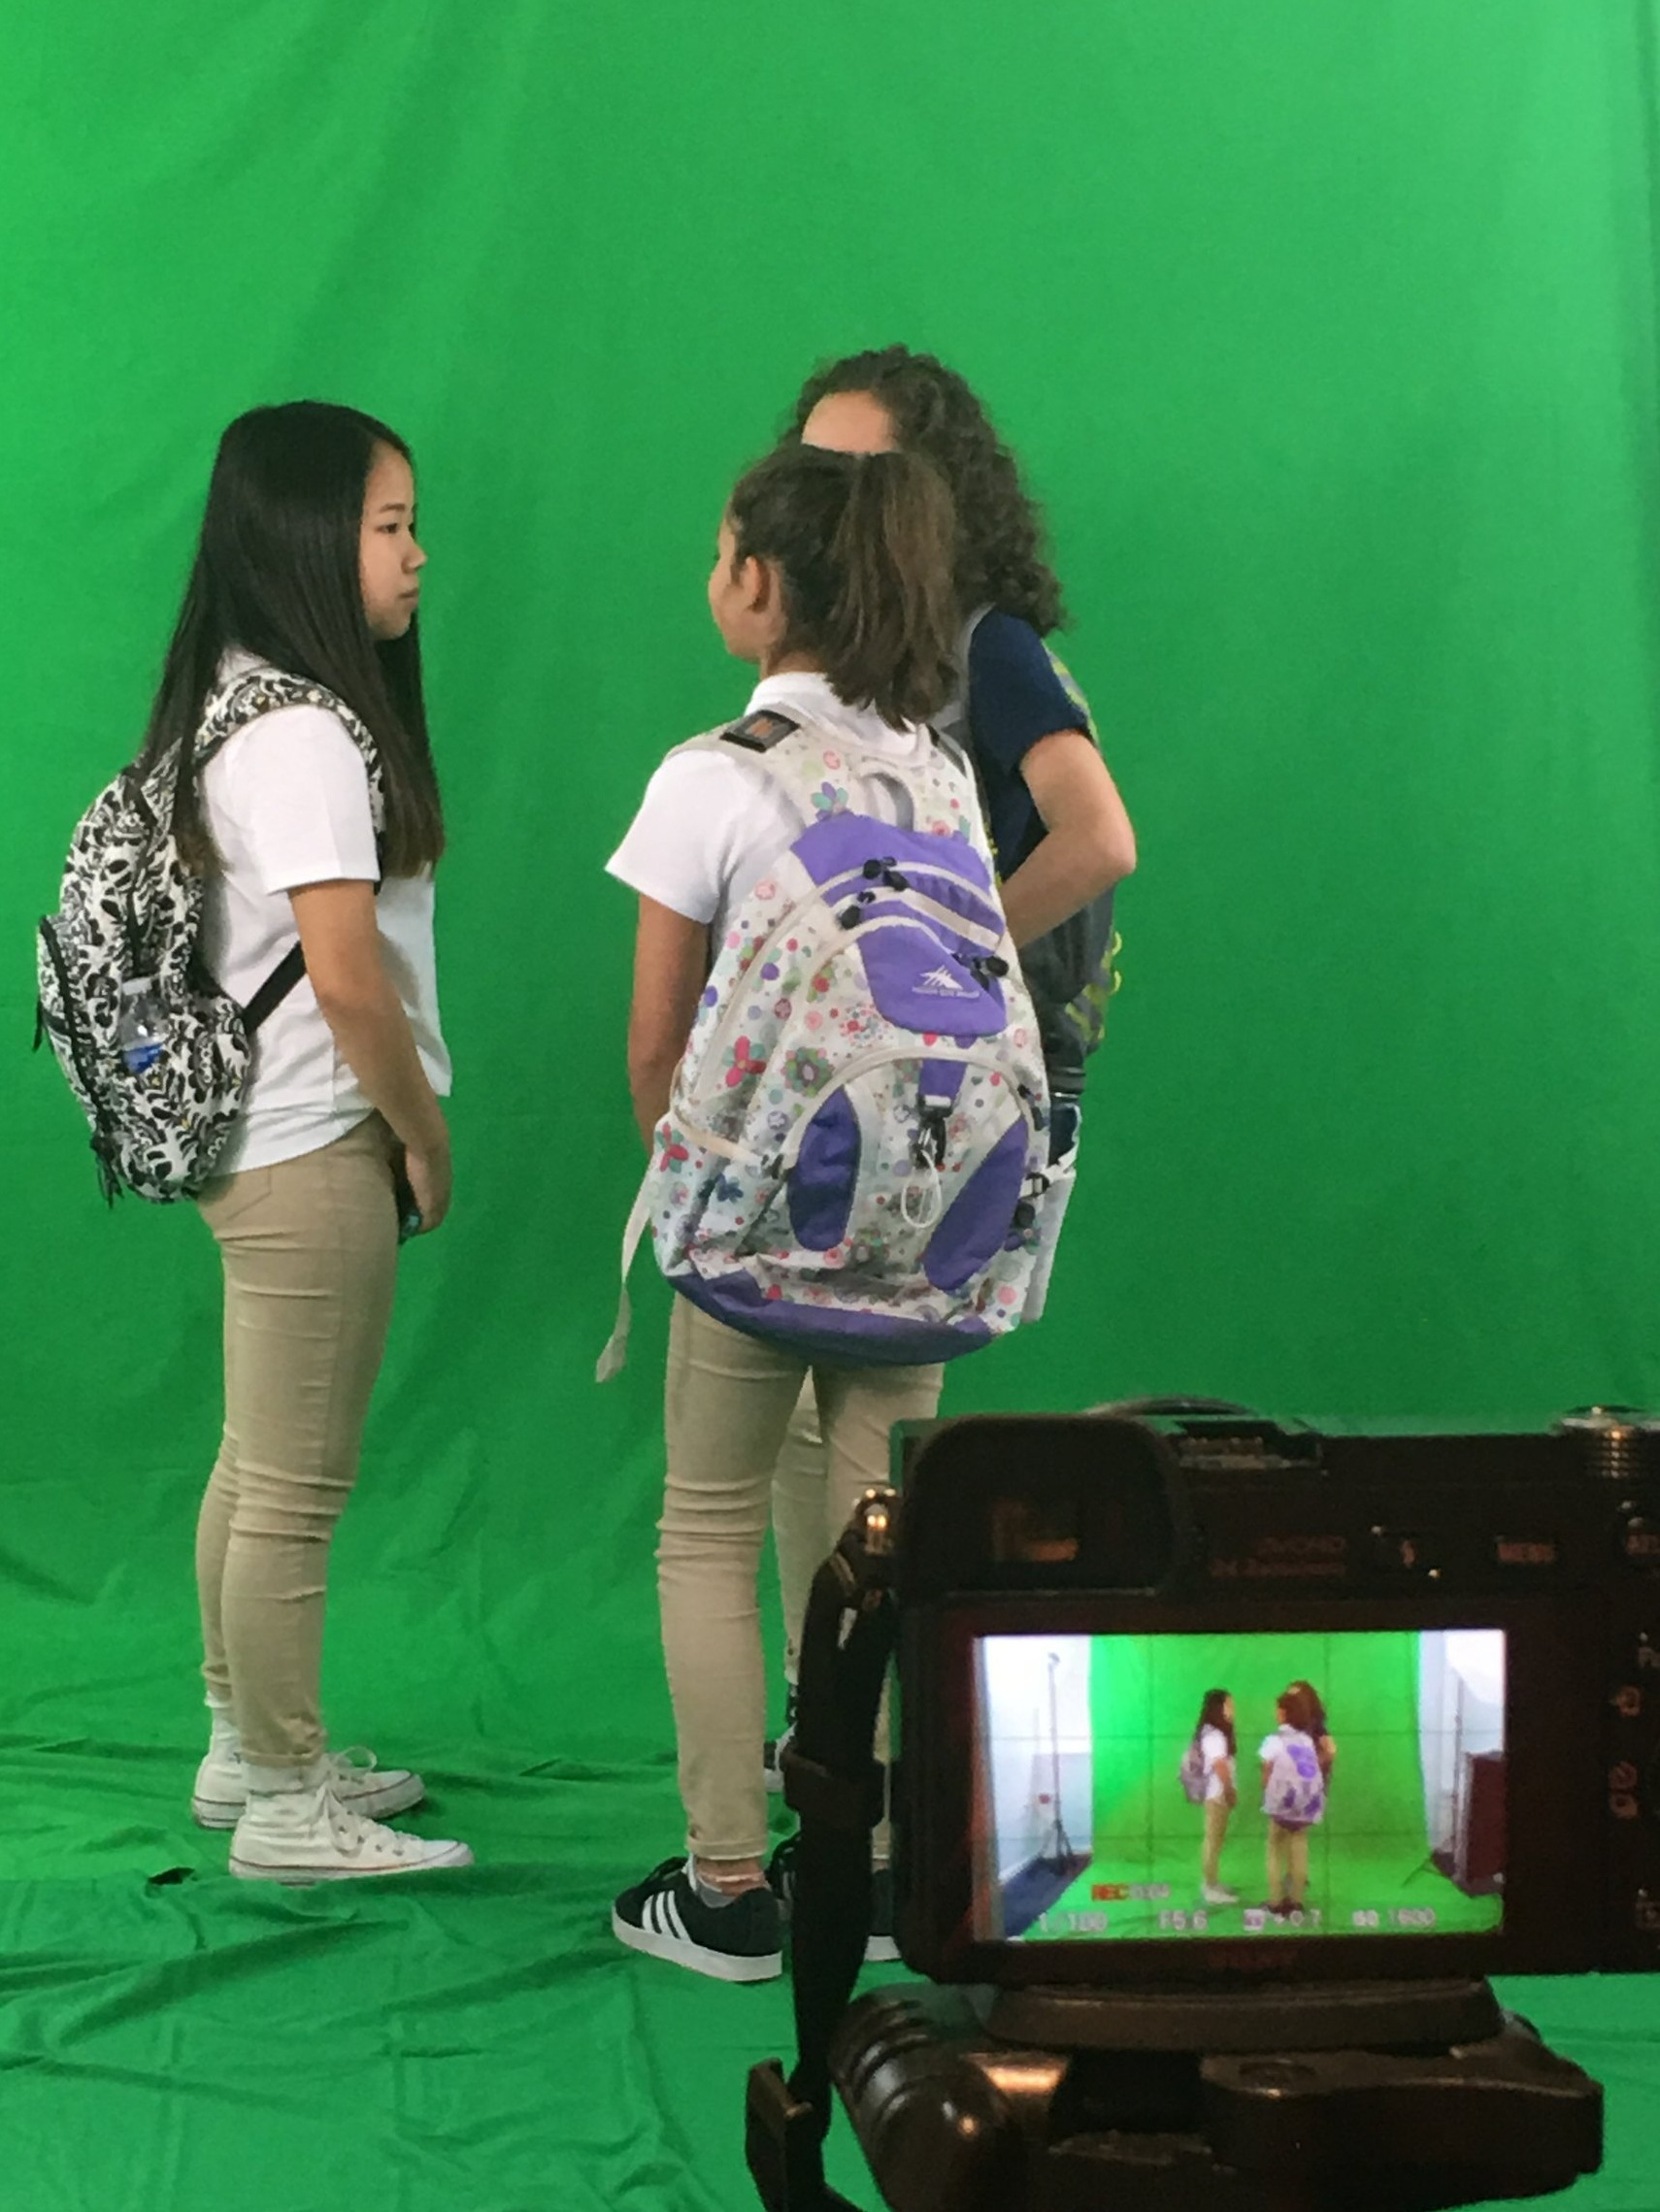 Behind the Scenes at IMD's Green Screen Camp | Summer 2019